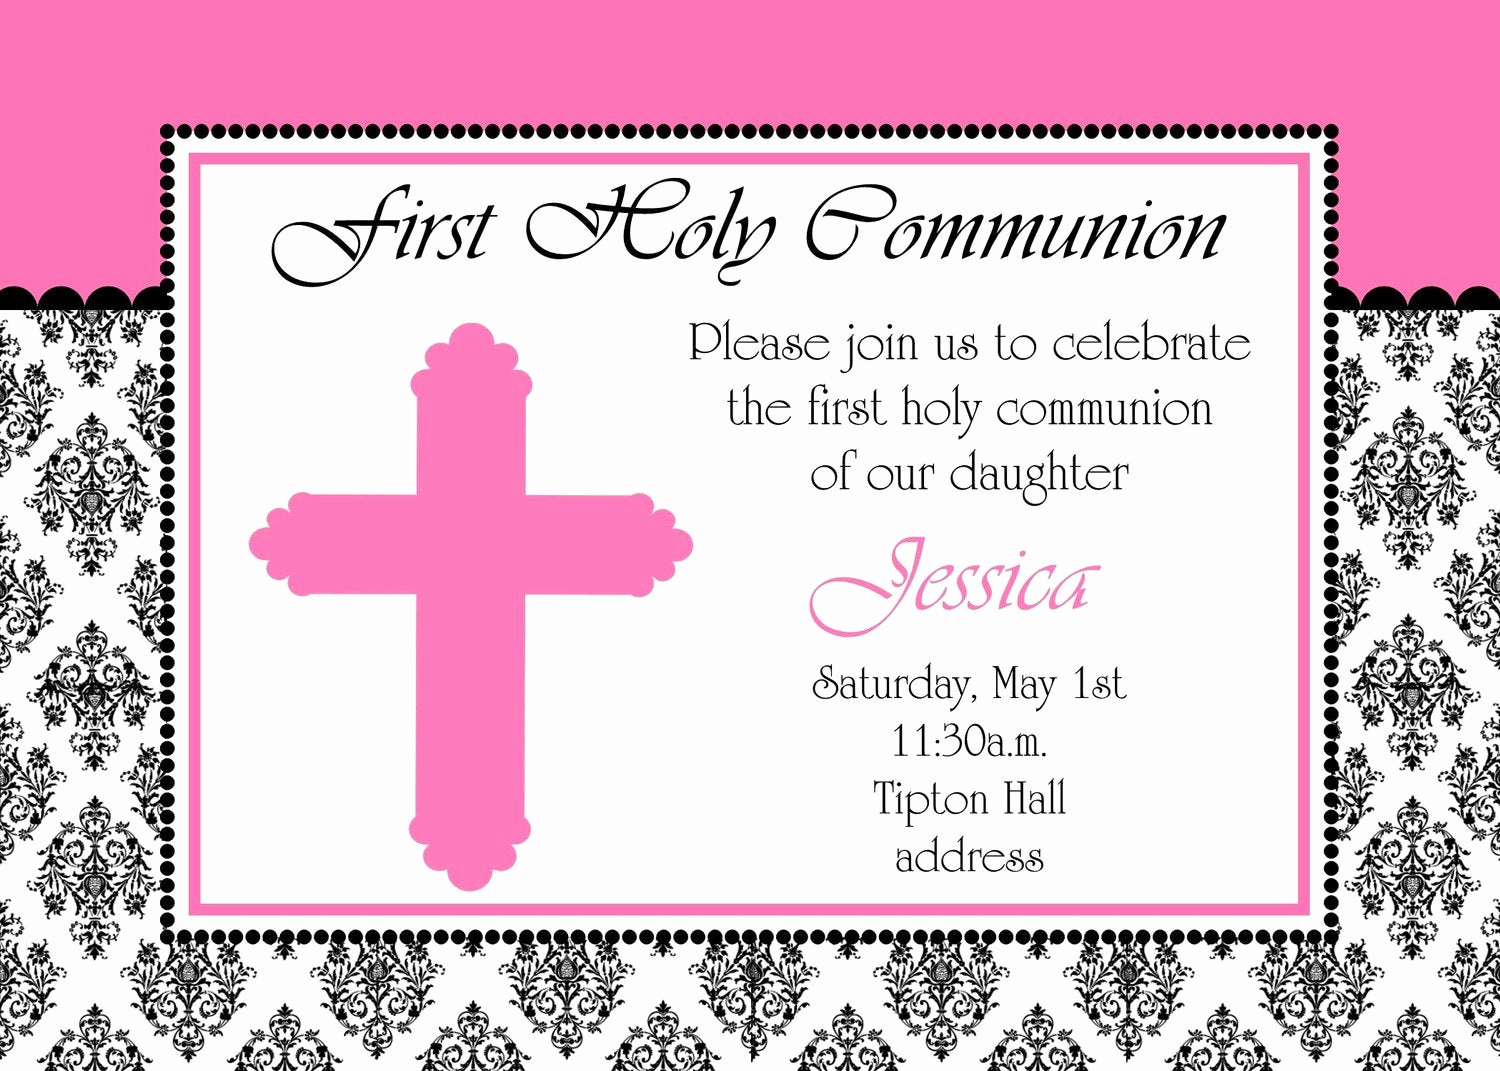 First Communion Invitation Wording Beautiful Girly First Holy Munion Invitation